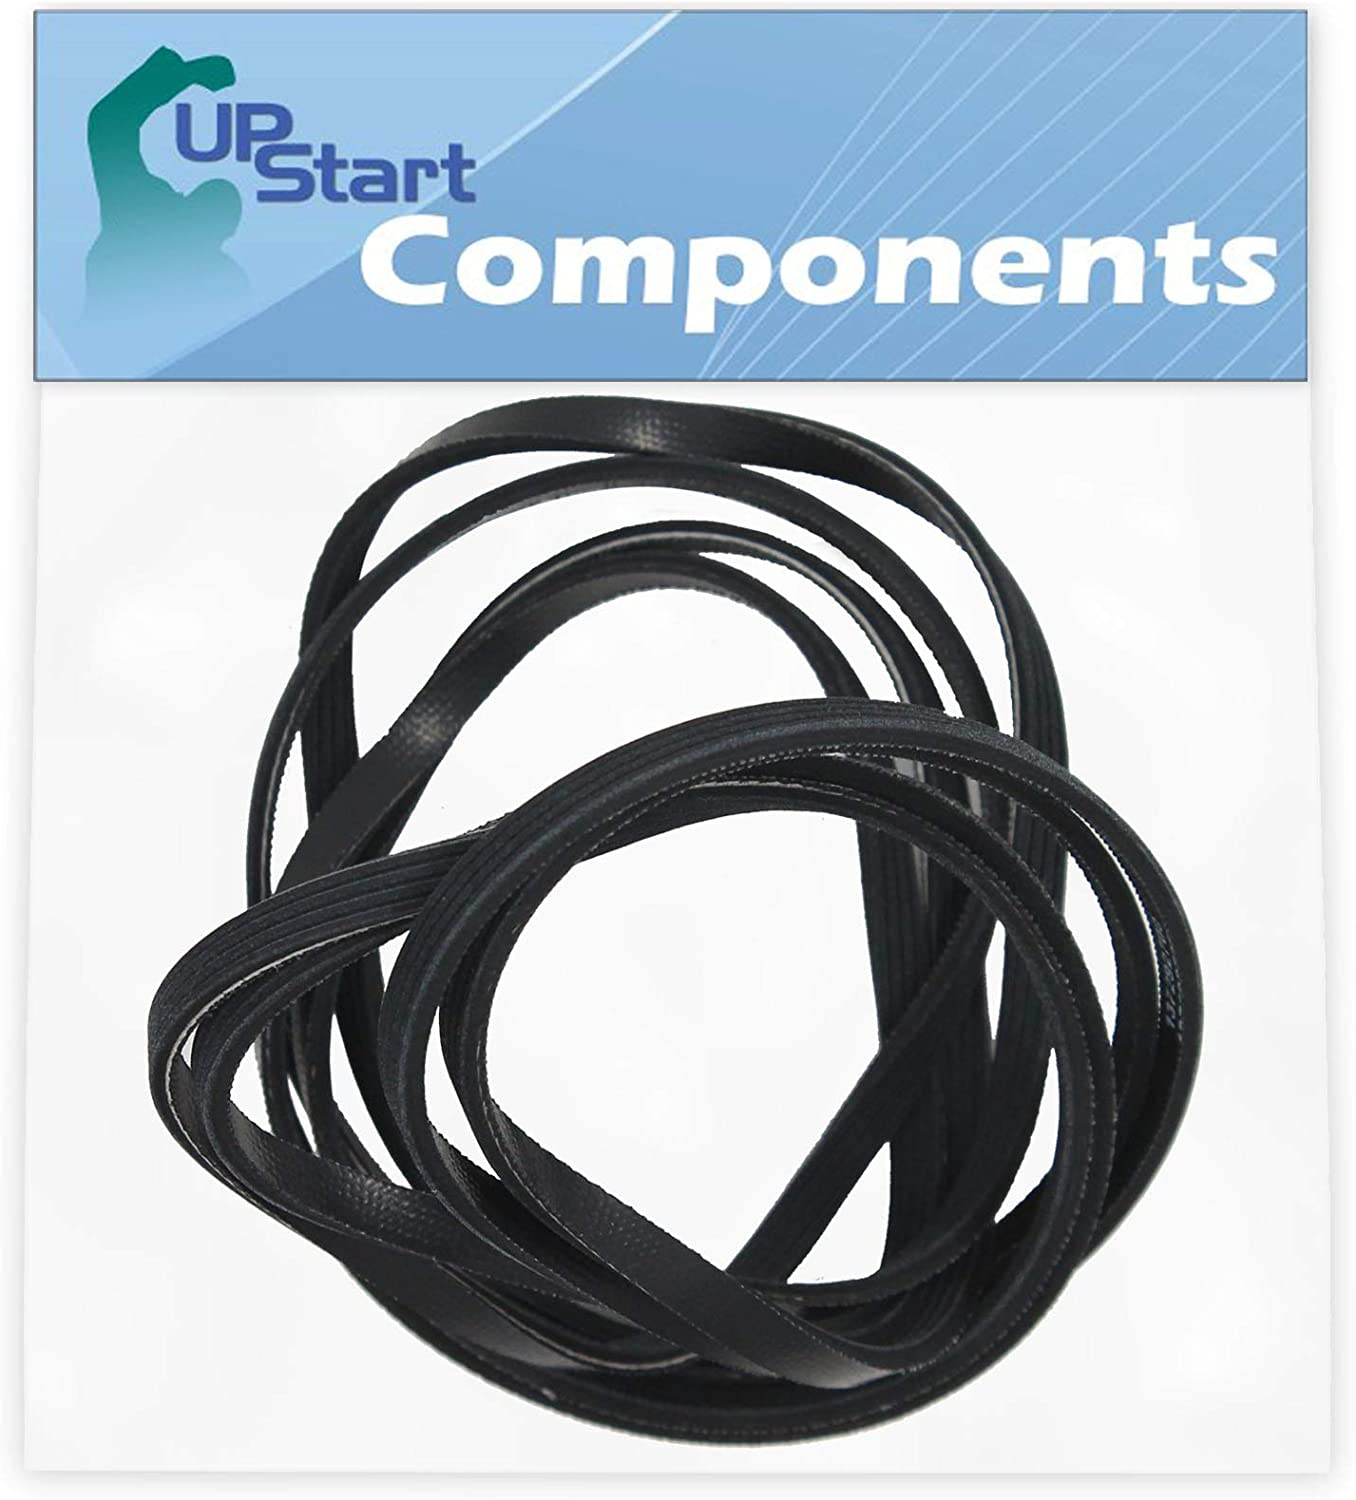 137292700 Dryer Belt Replacement for Electrolux FFLE2022MW2 - Compatible with 134163500 Drum Belt